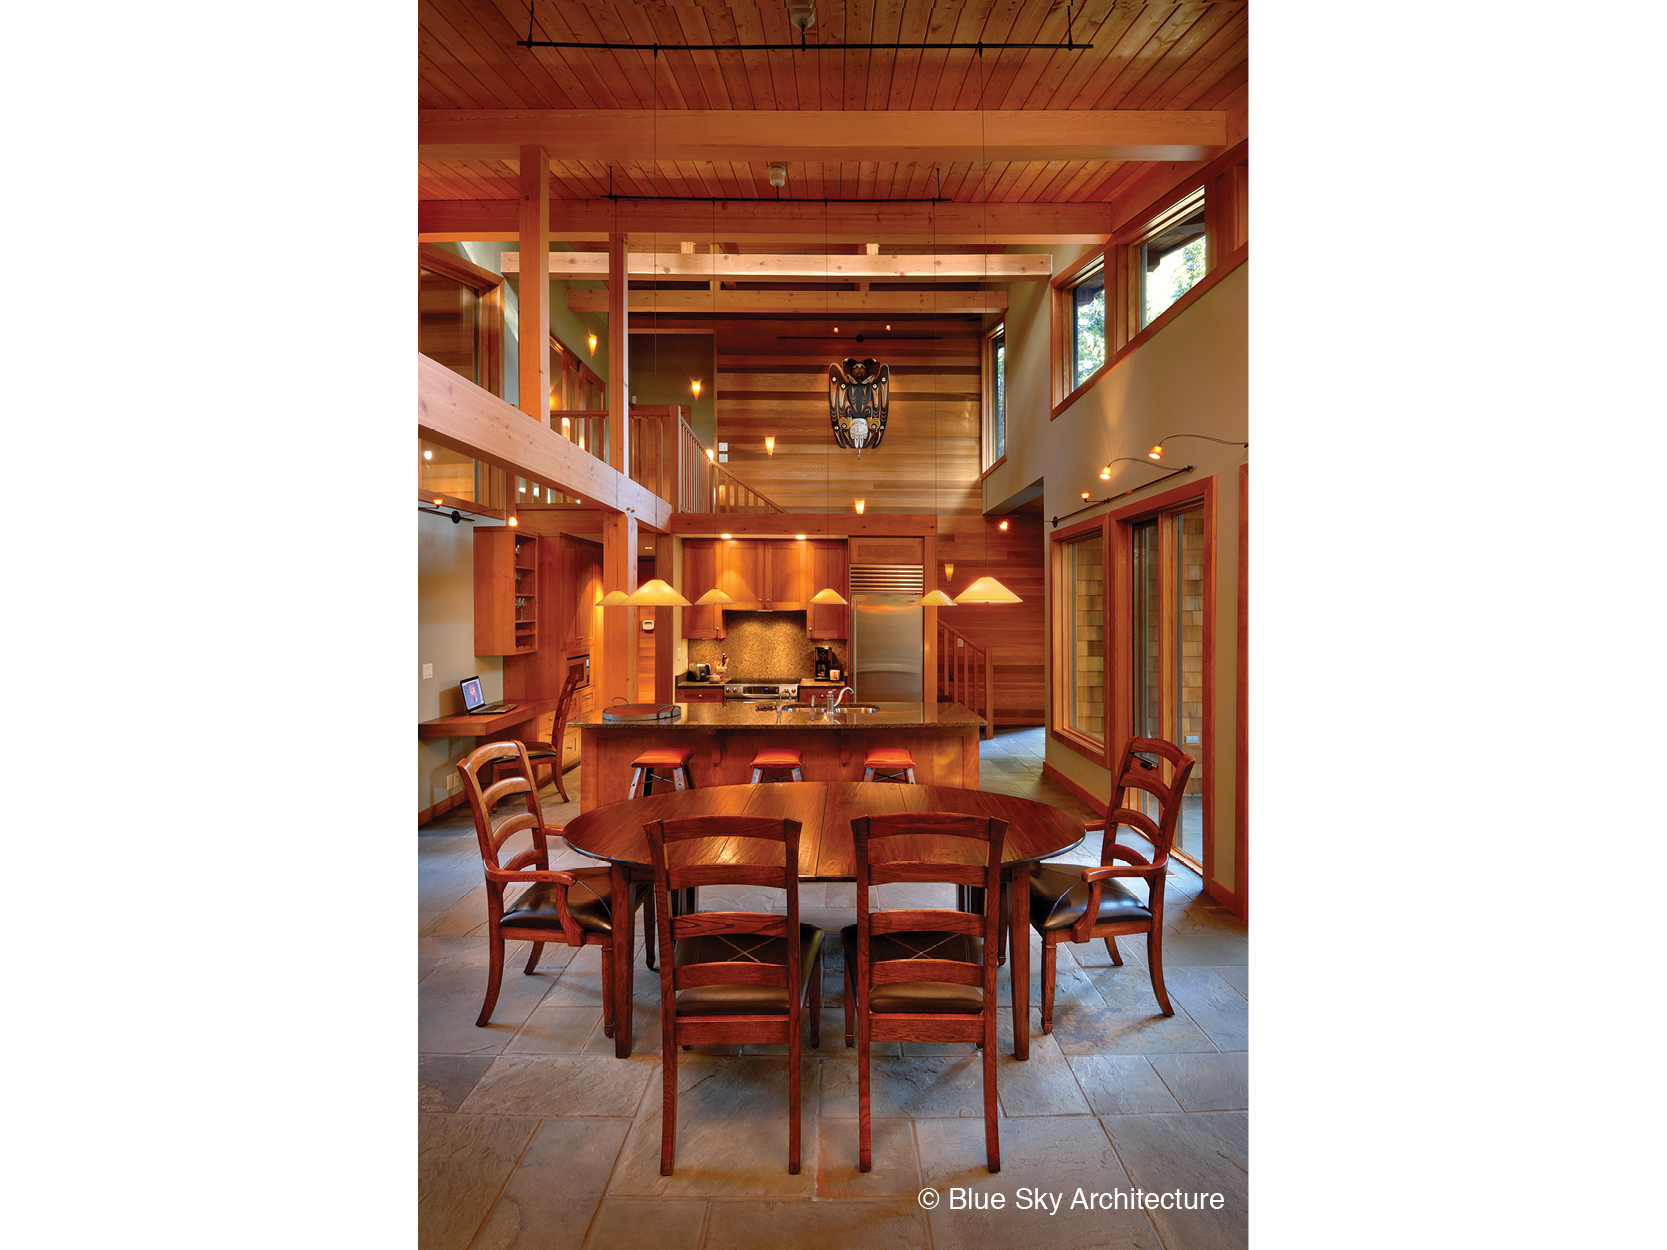 Post and beam framing and ceiling of the dining room in Rainforest House